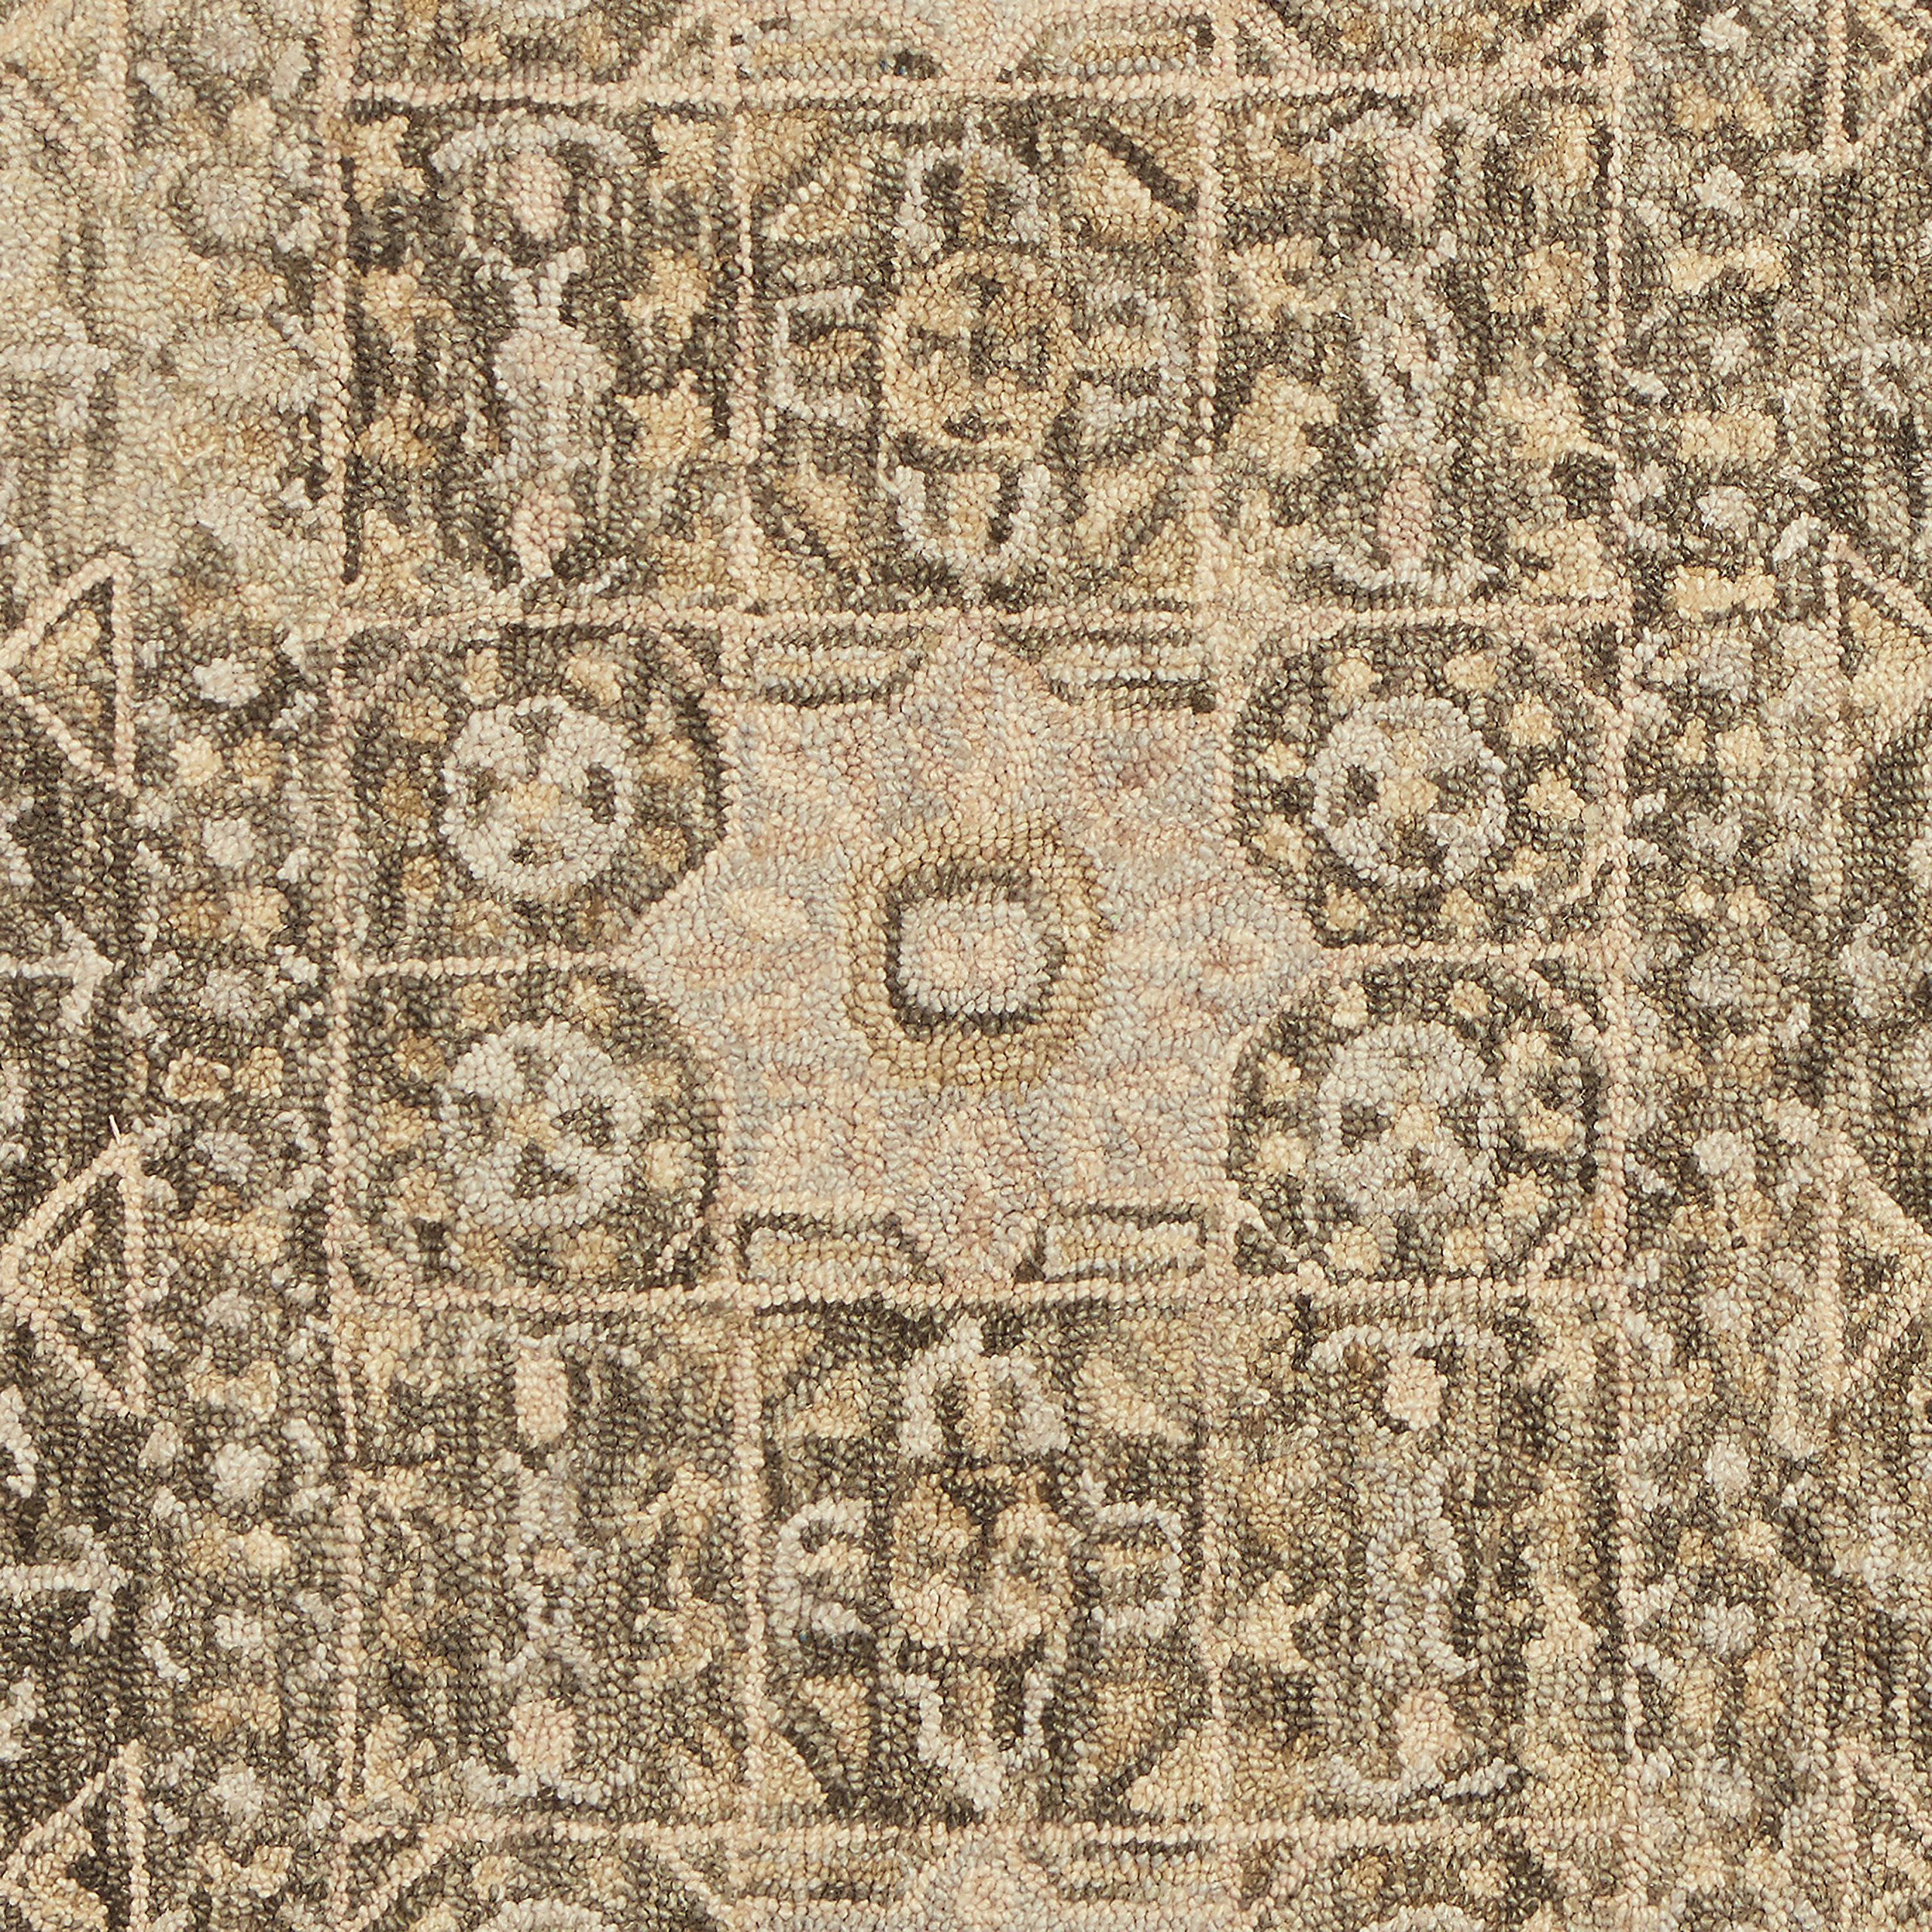 Stone & Beam Kelsea Transitional Wool Area Rug, 8' x 10', Beige and Grey by Stone & Beam (Image #2)